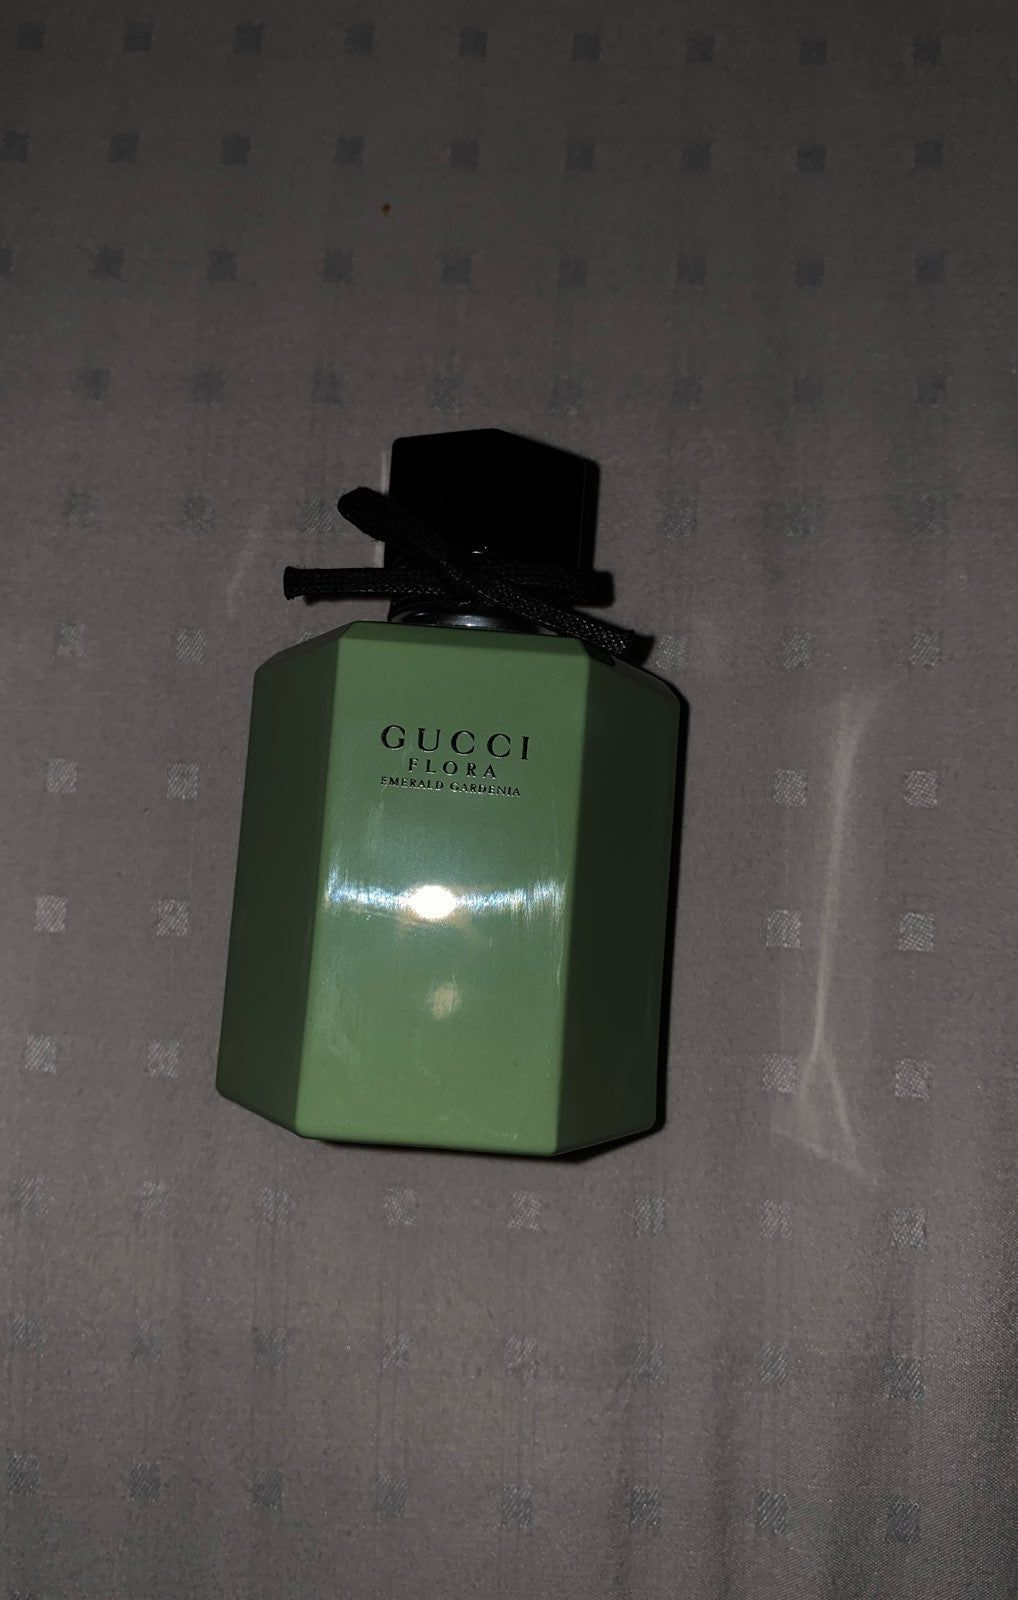 Gucci Flora Emerald Gardenia 1 6 Fl Oz Completely Full With